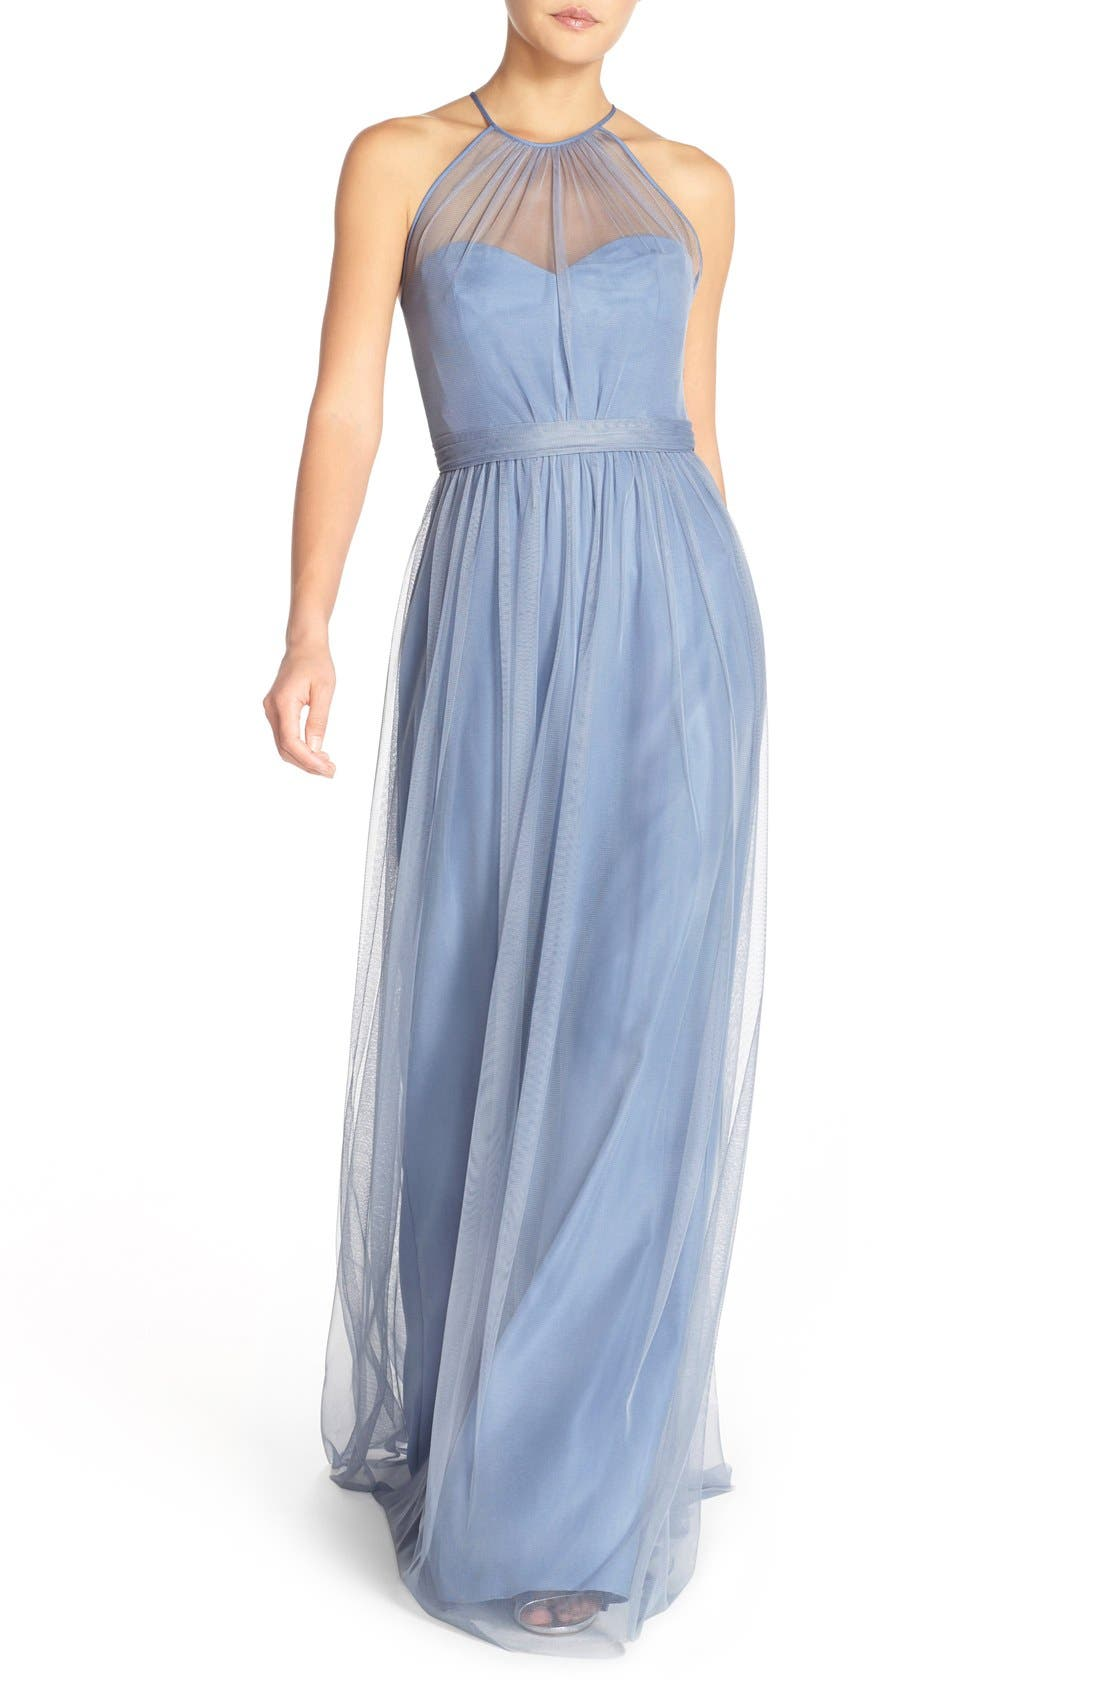 Main Image - Amsale 'Aliki' Illusion Yoke Tulle Halter Gown